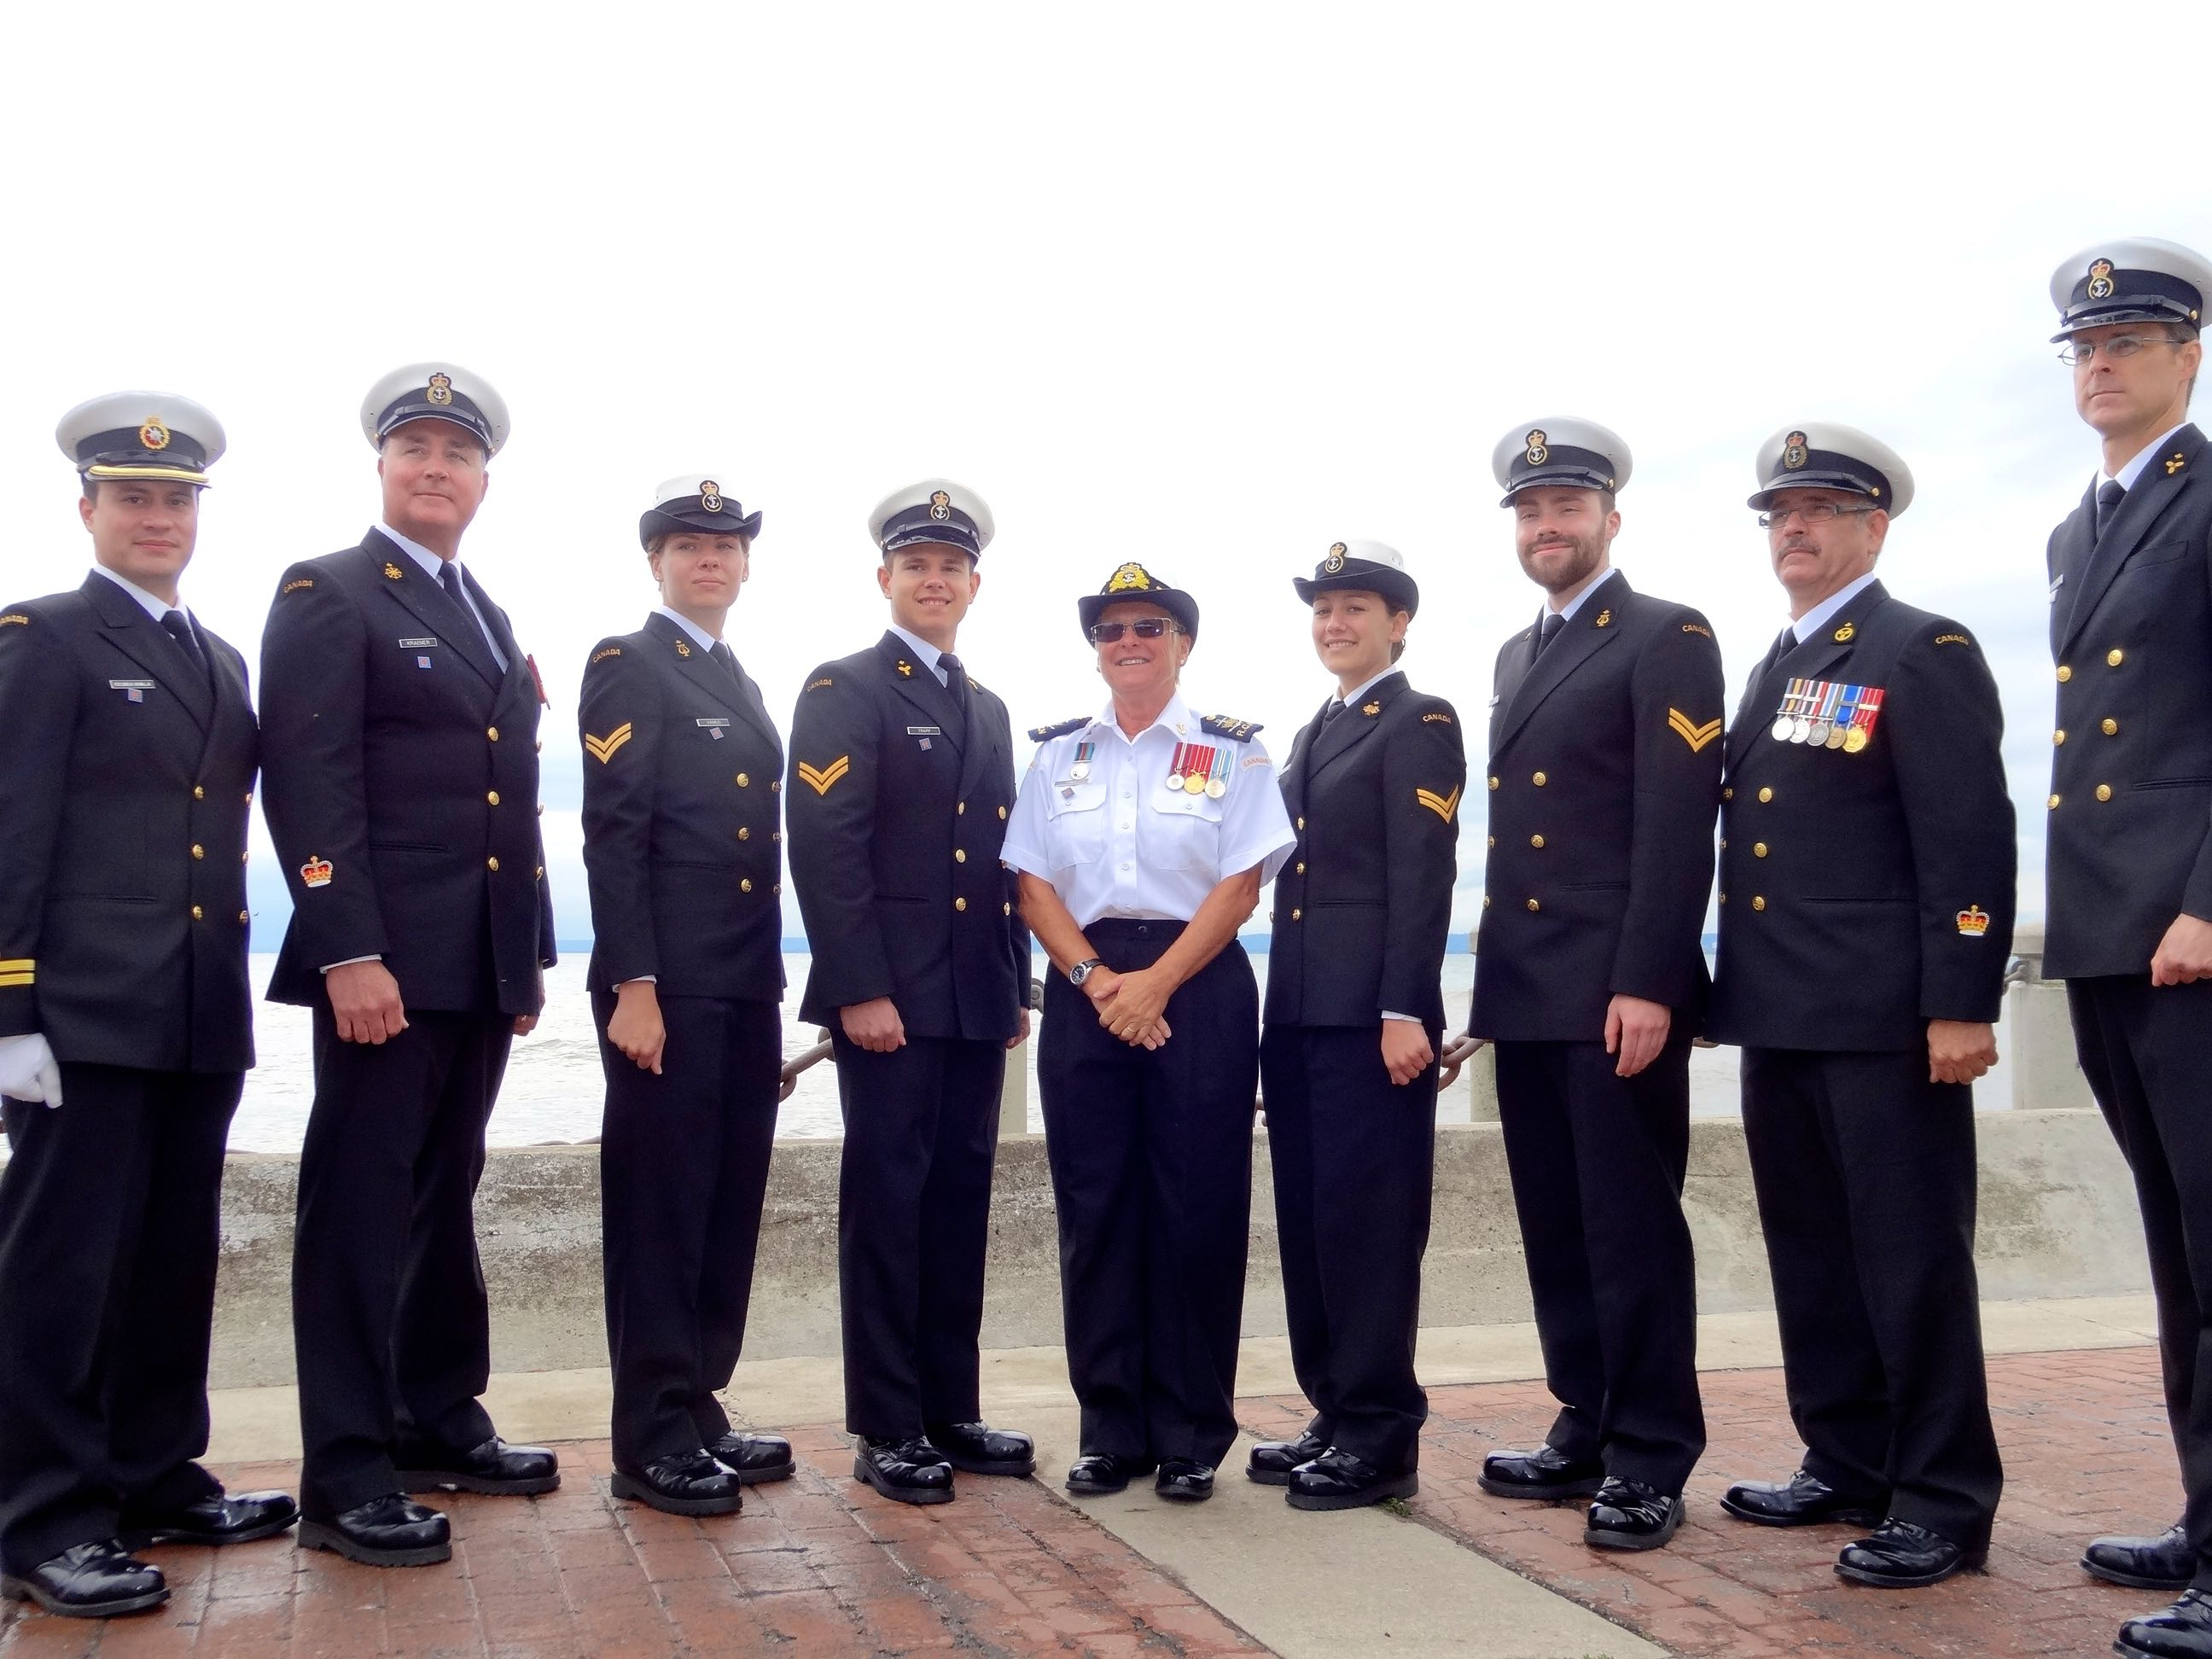 Canadian Navy Representatives